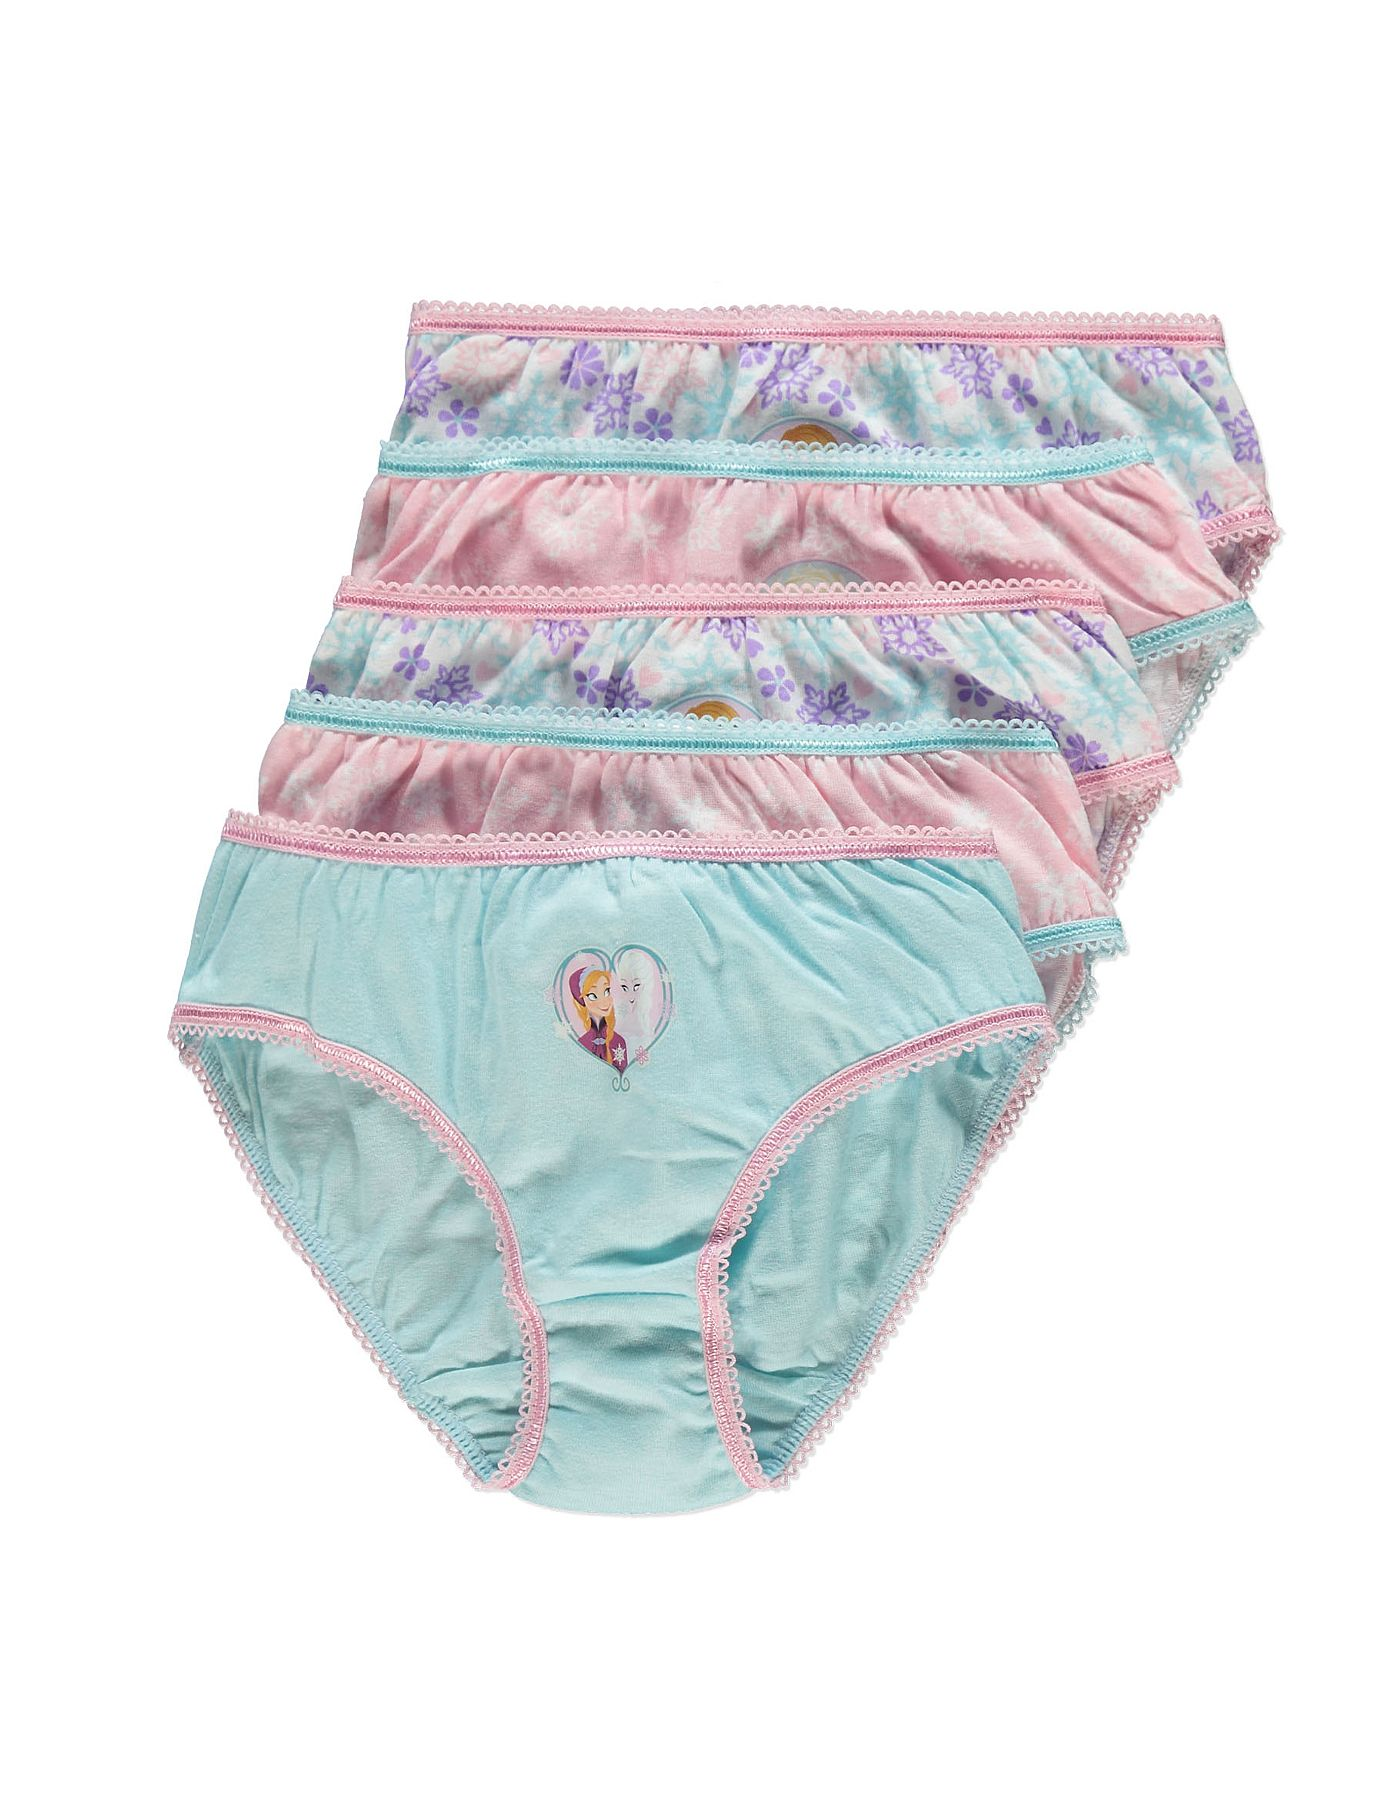 596c35282c38 Disney Frozen 5 Pack Briefs | Girls | George at ASDA | Girls ...